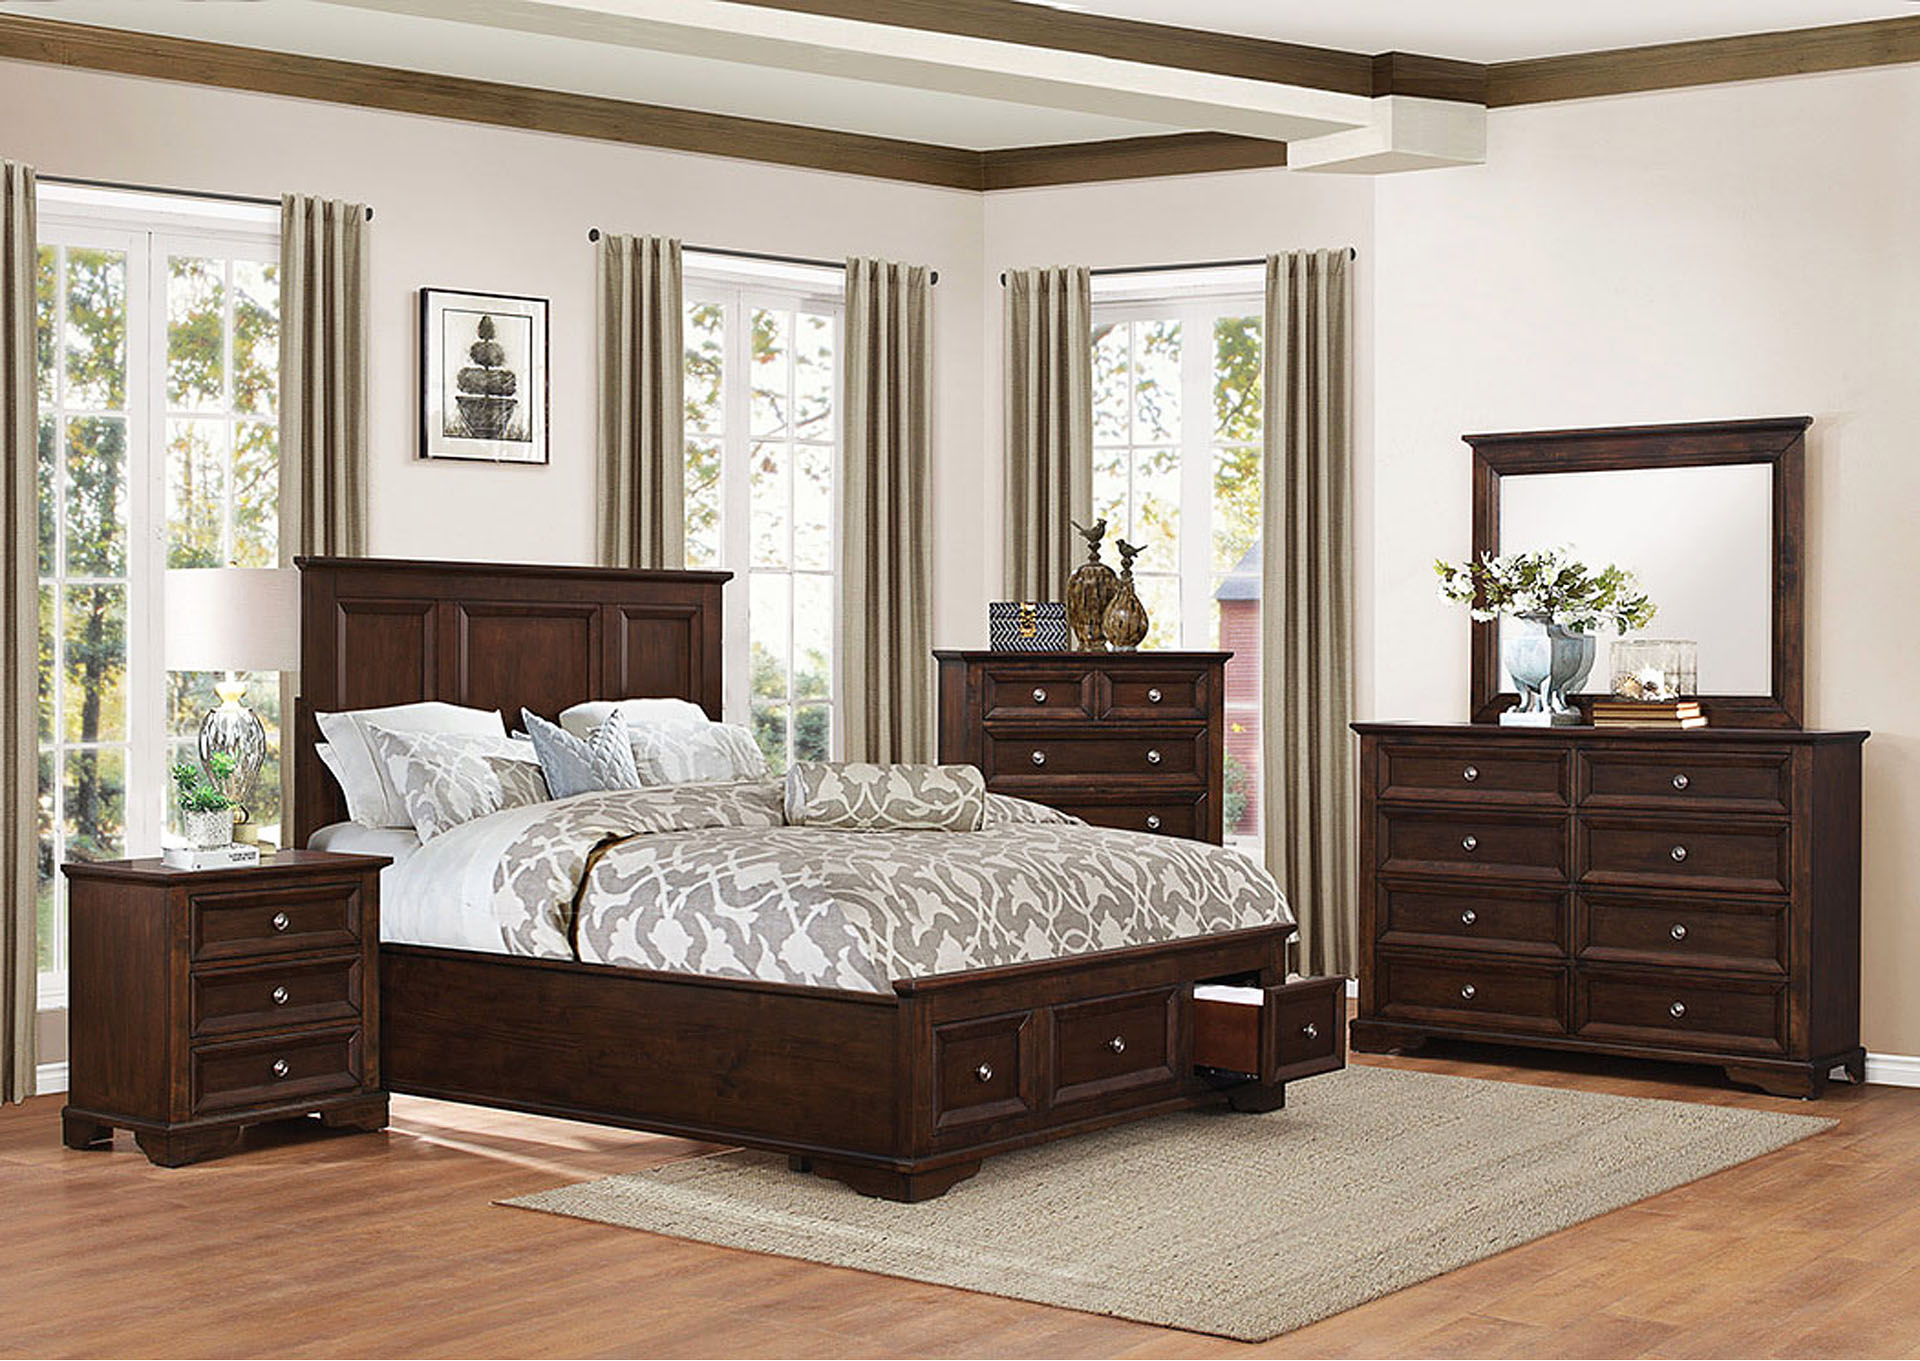 Queen Bed w/Footboard Storage,Homelegance